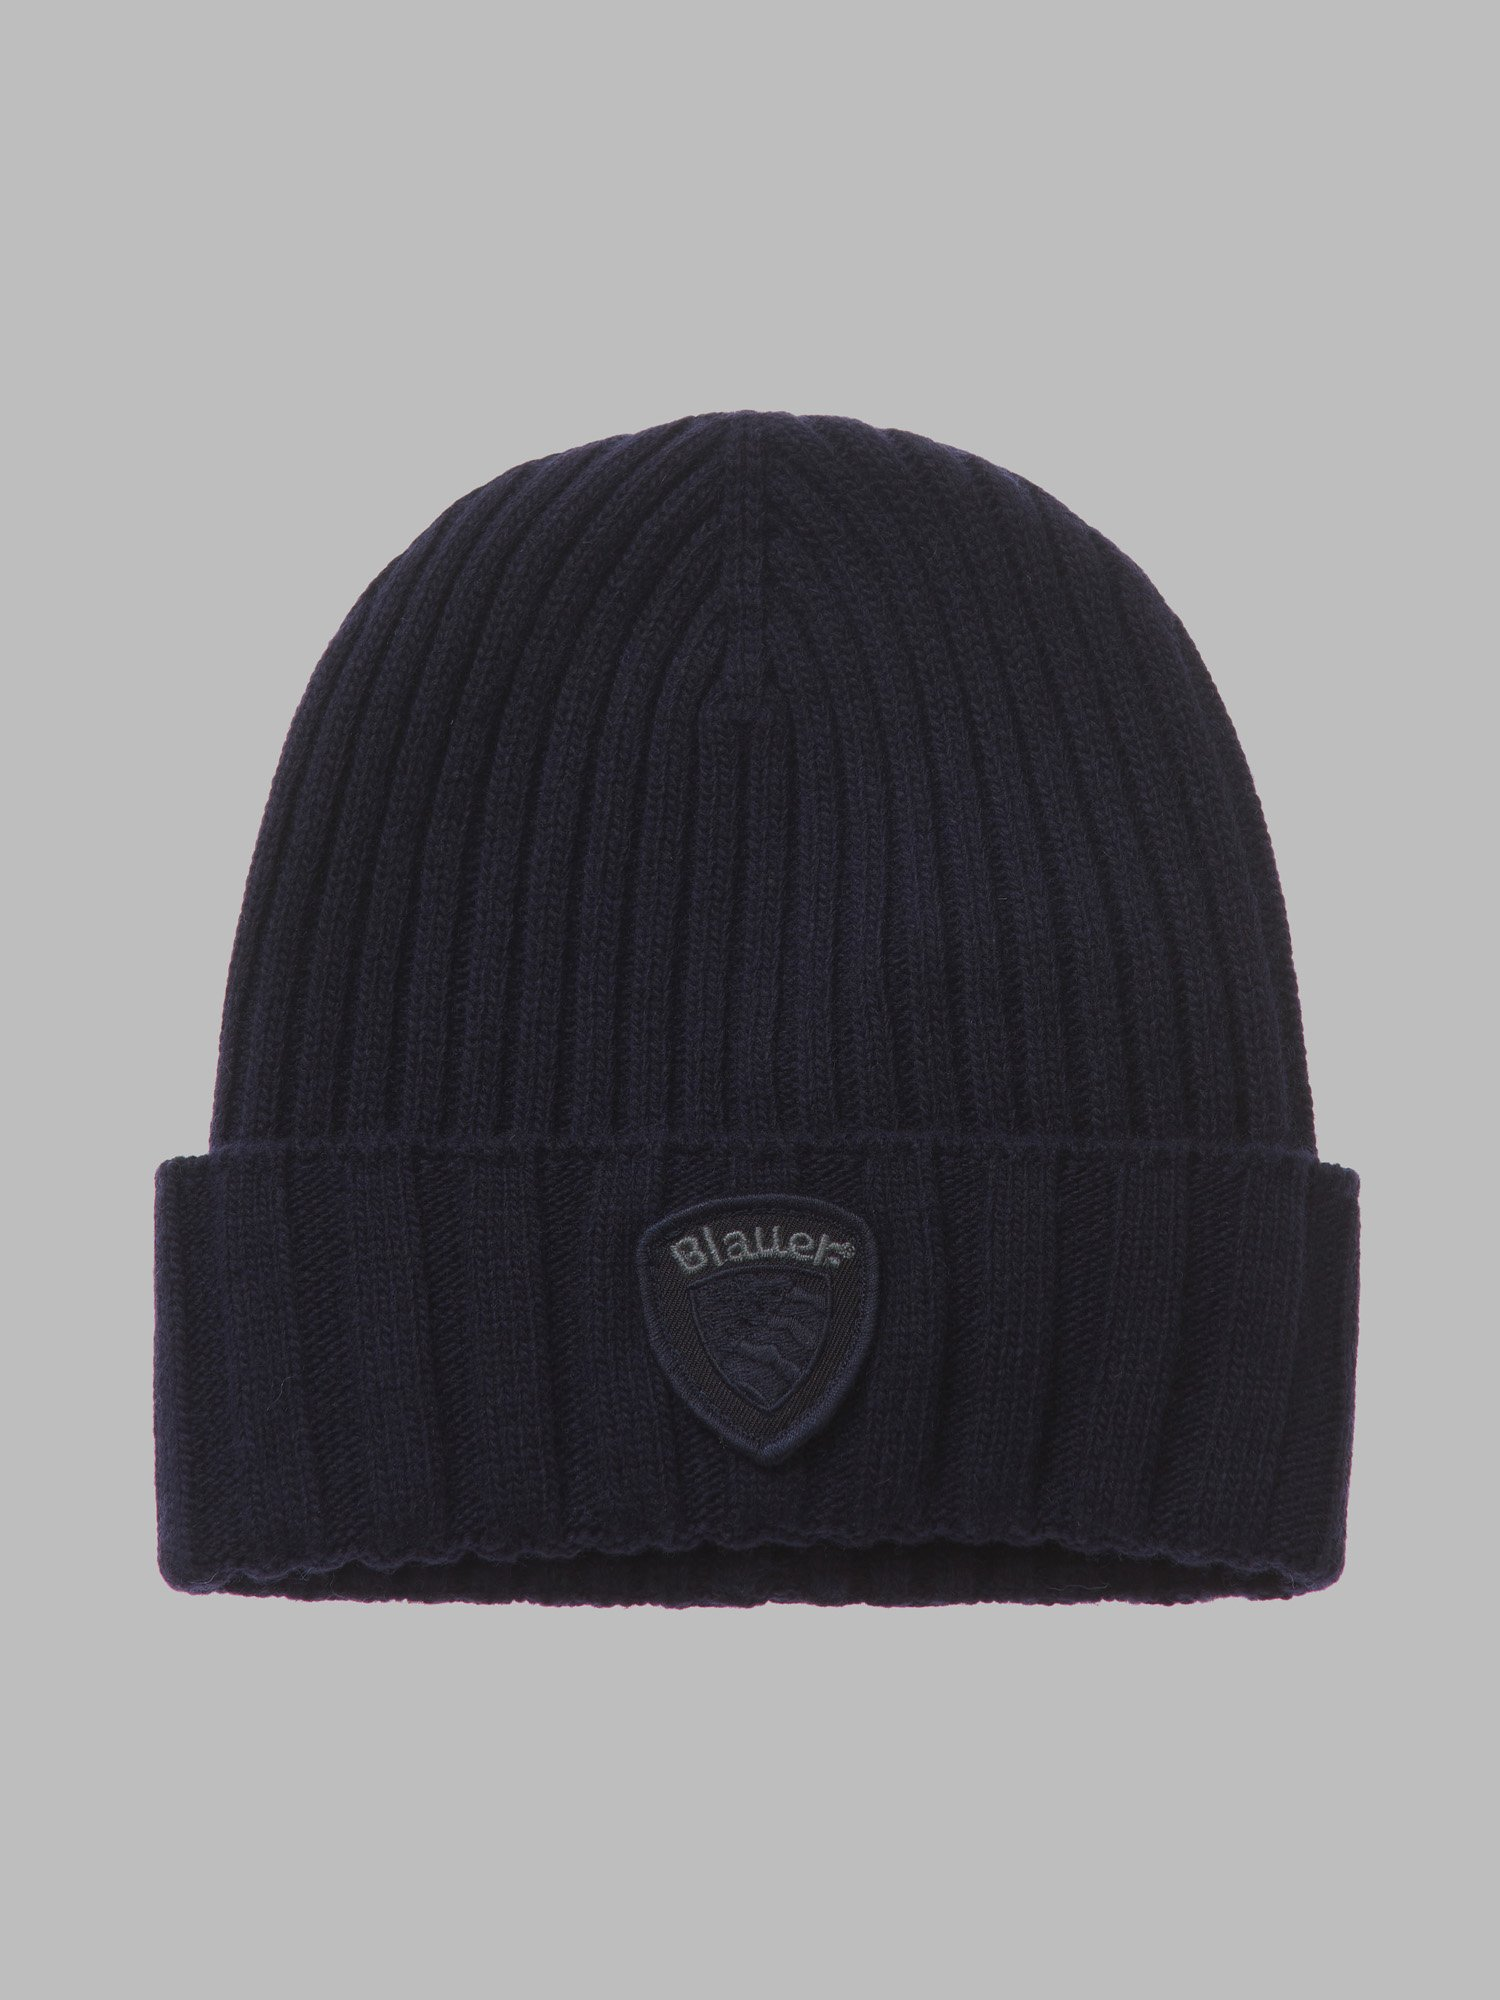 ROUNDED CAP WITH SHIELD - Blauer